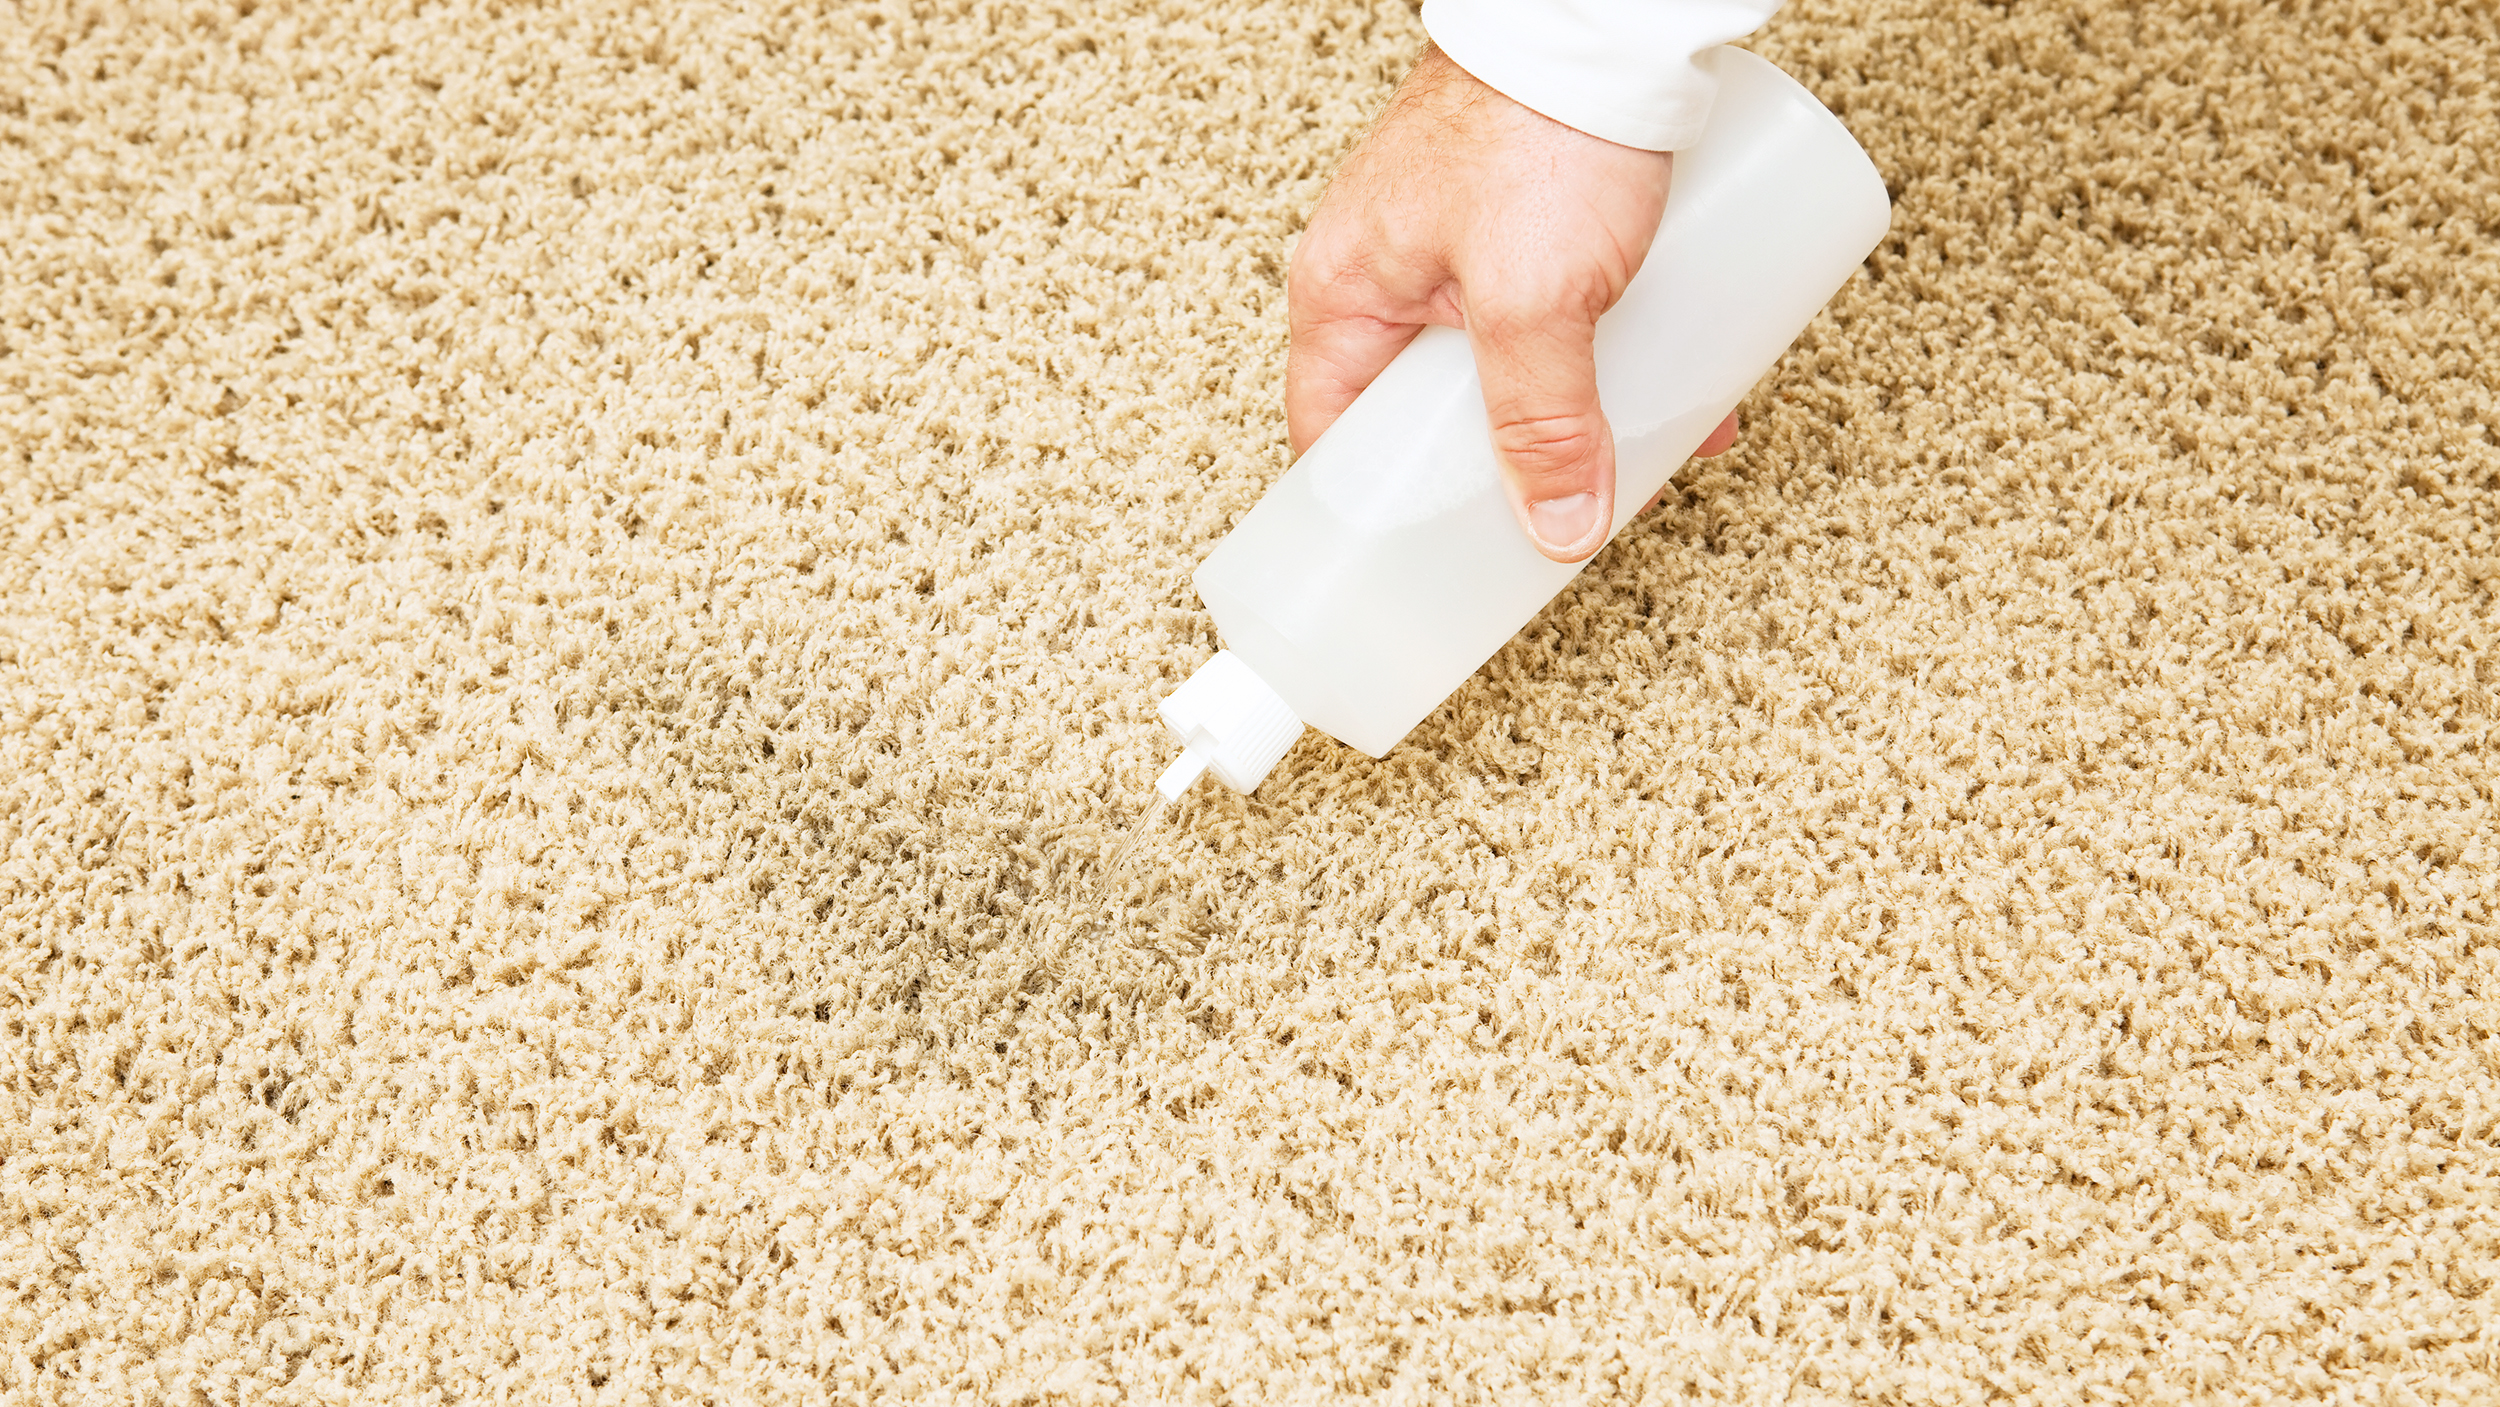 How To Remove Water Spots From Your Clothing And Carpet